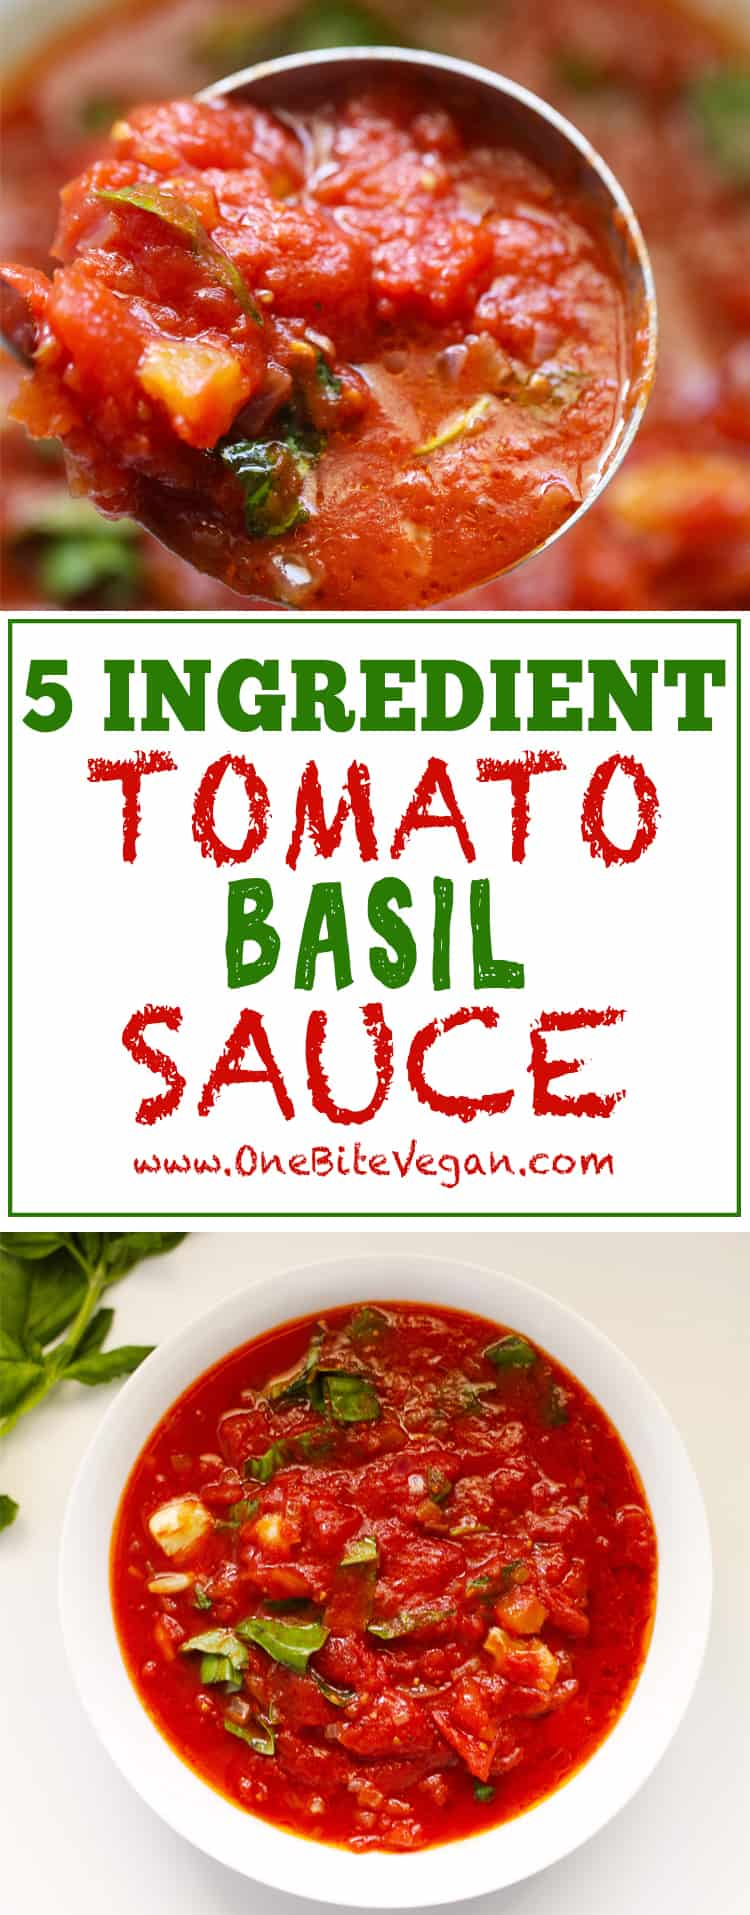 Easy 5 ingredient tomato basil sauce. Ready in 1 hour 15 minutes, this tomato basil sauce is perfect for pasta or any dish calling for tomato sauce.